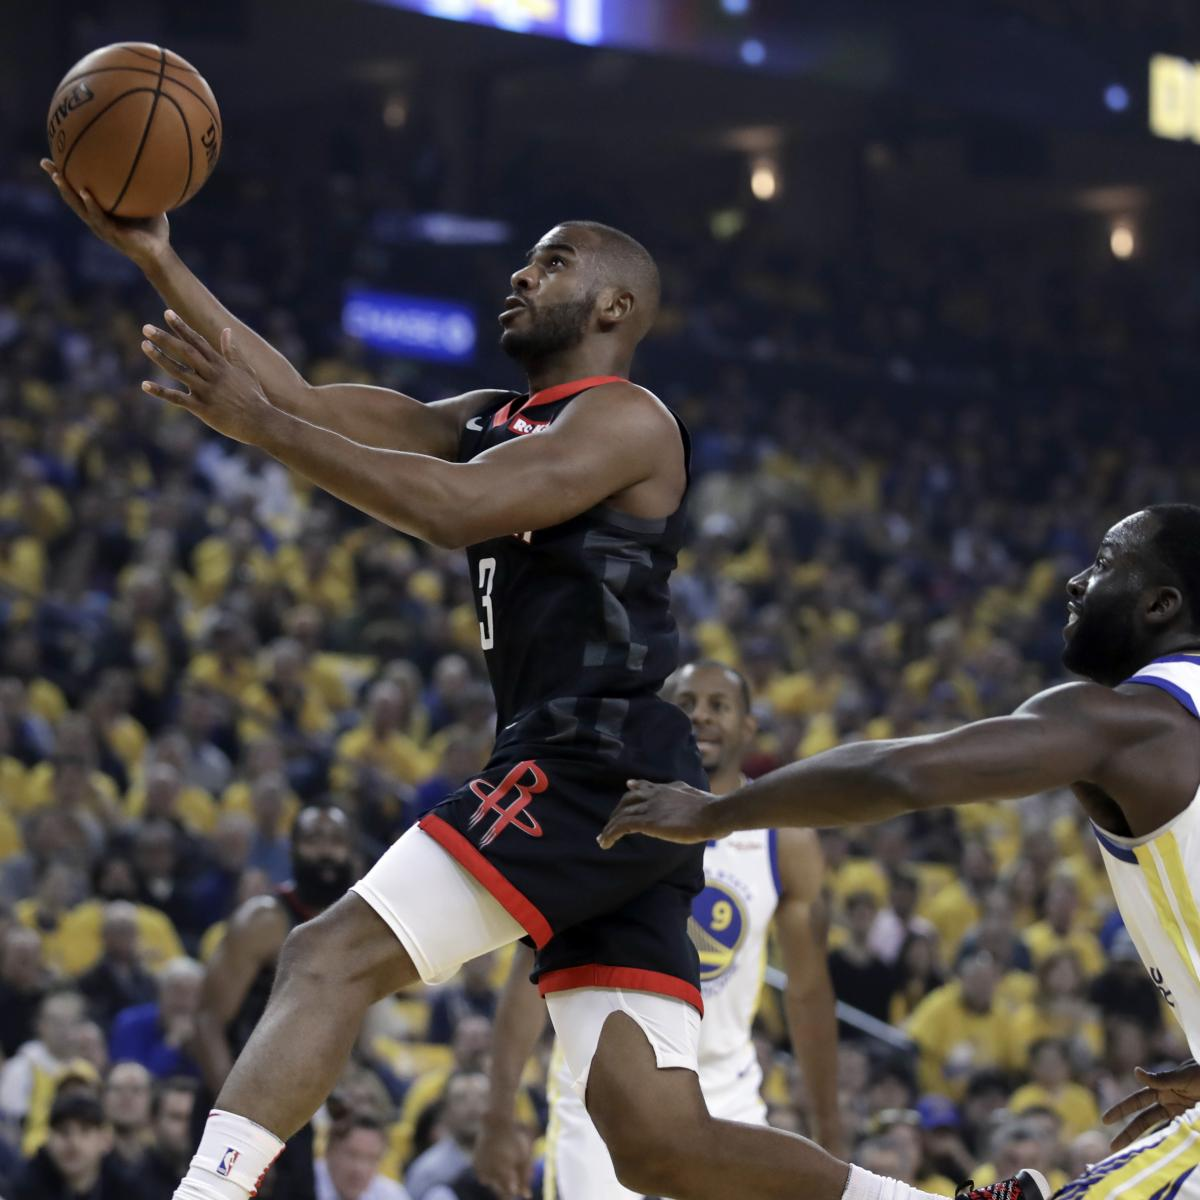 NBA Playoffs 2019: Friday Schedule, Odds, Picks For